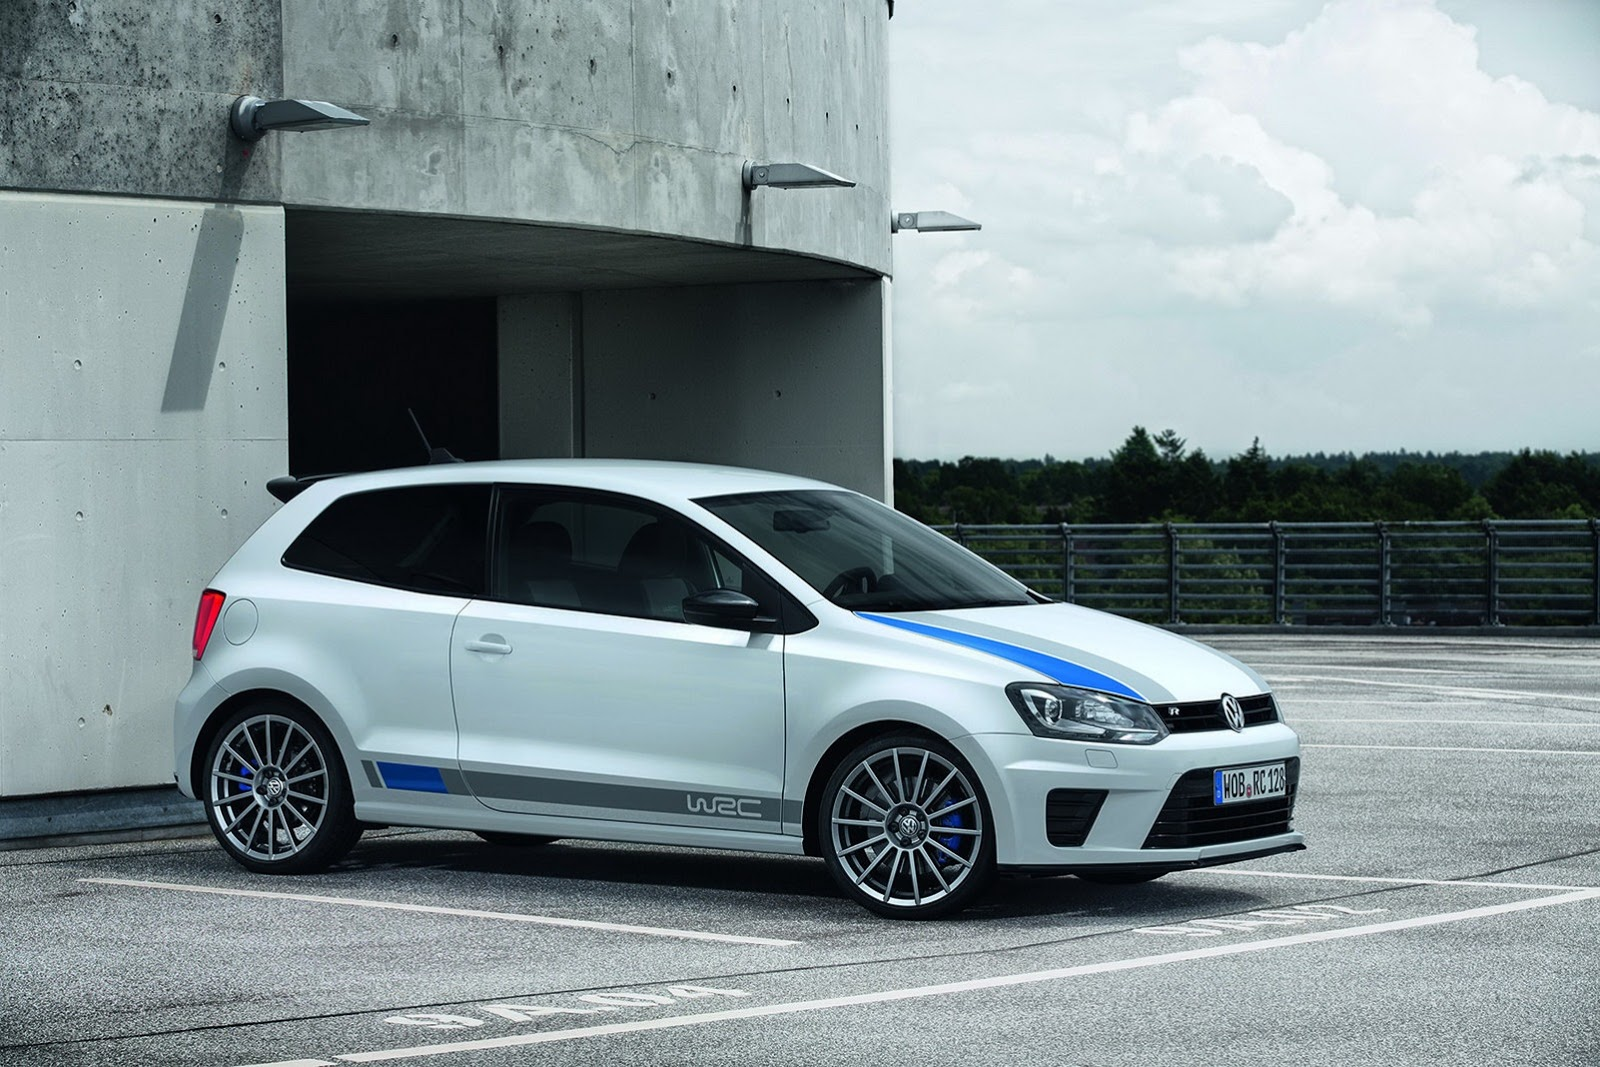 2013 volkswagen polo r wrc street news and information. Black Bedroom Furniture Sets. Home Design Ideas